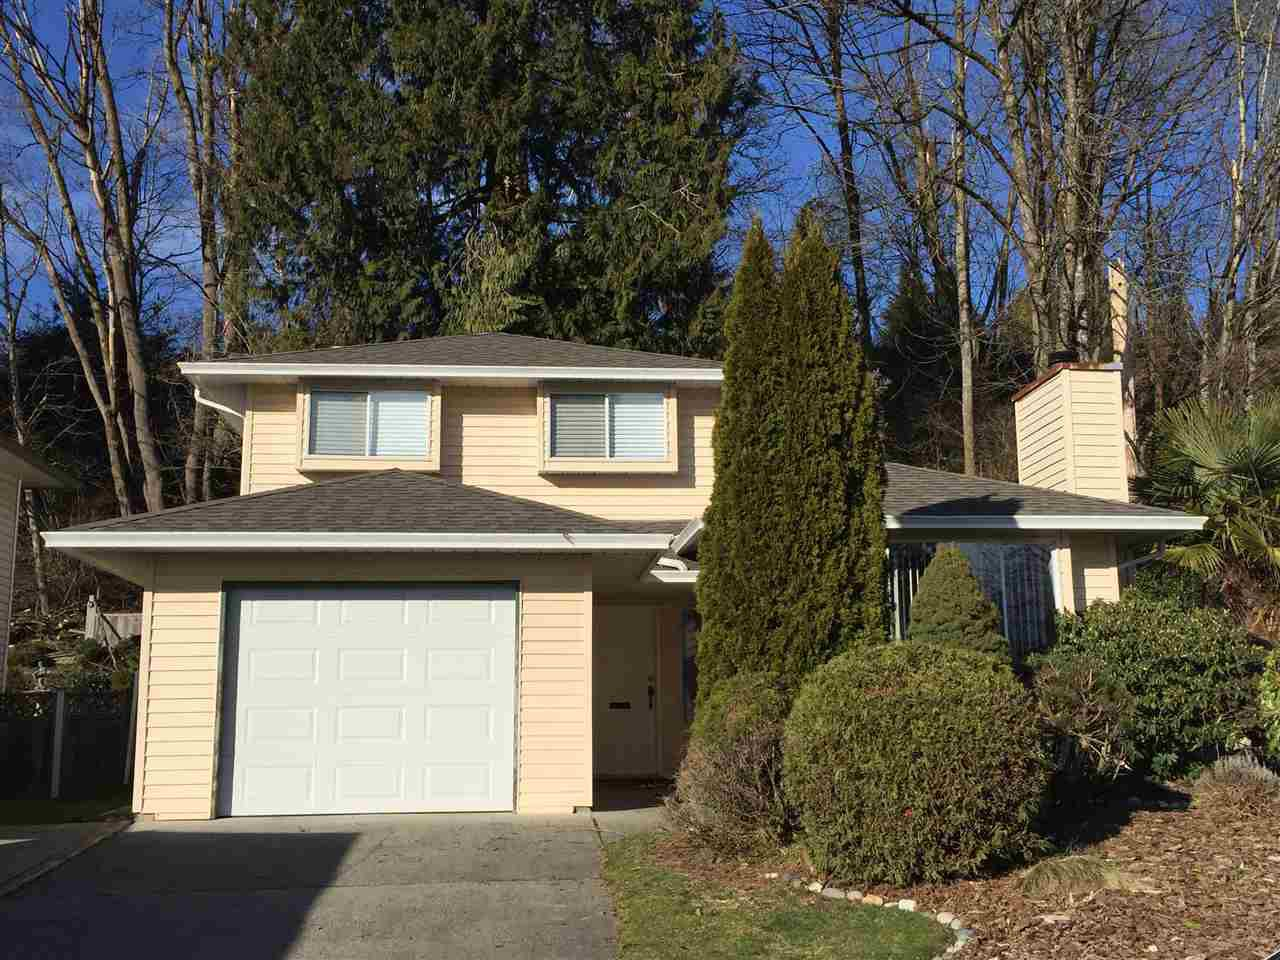 Main Photo: 11751 DRIFTWOOD Drive in Maple Ridge: West Central House for sale : MLS®# R2339981